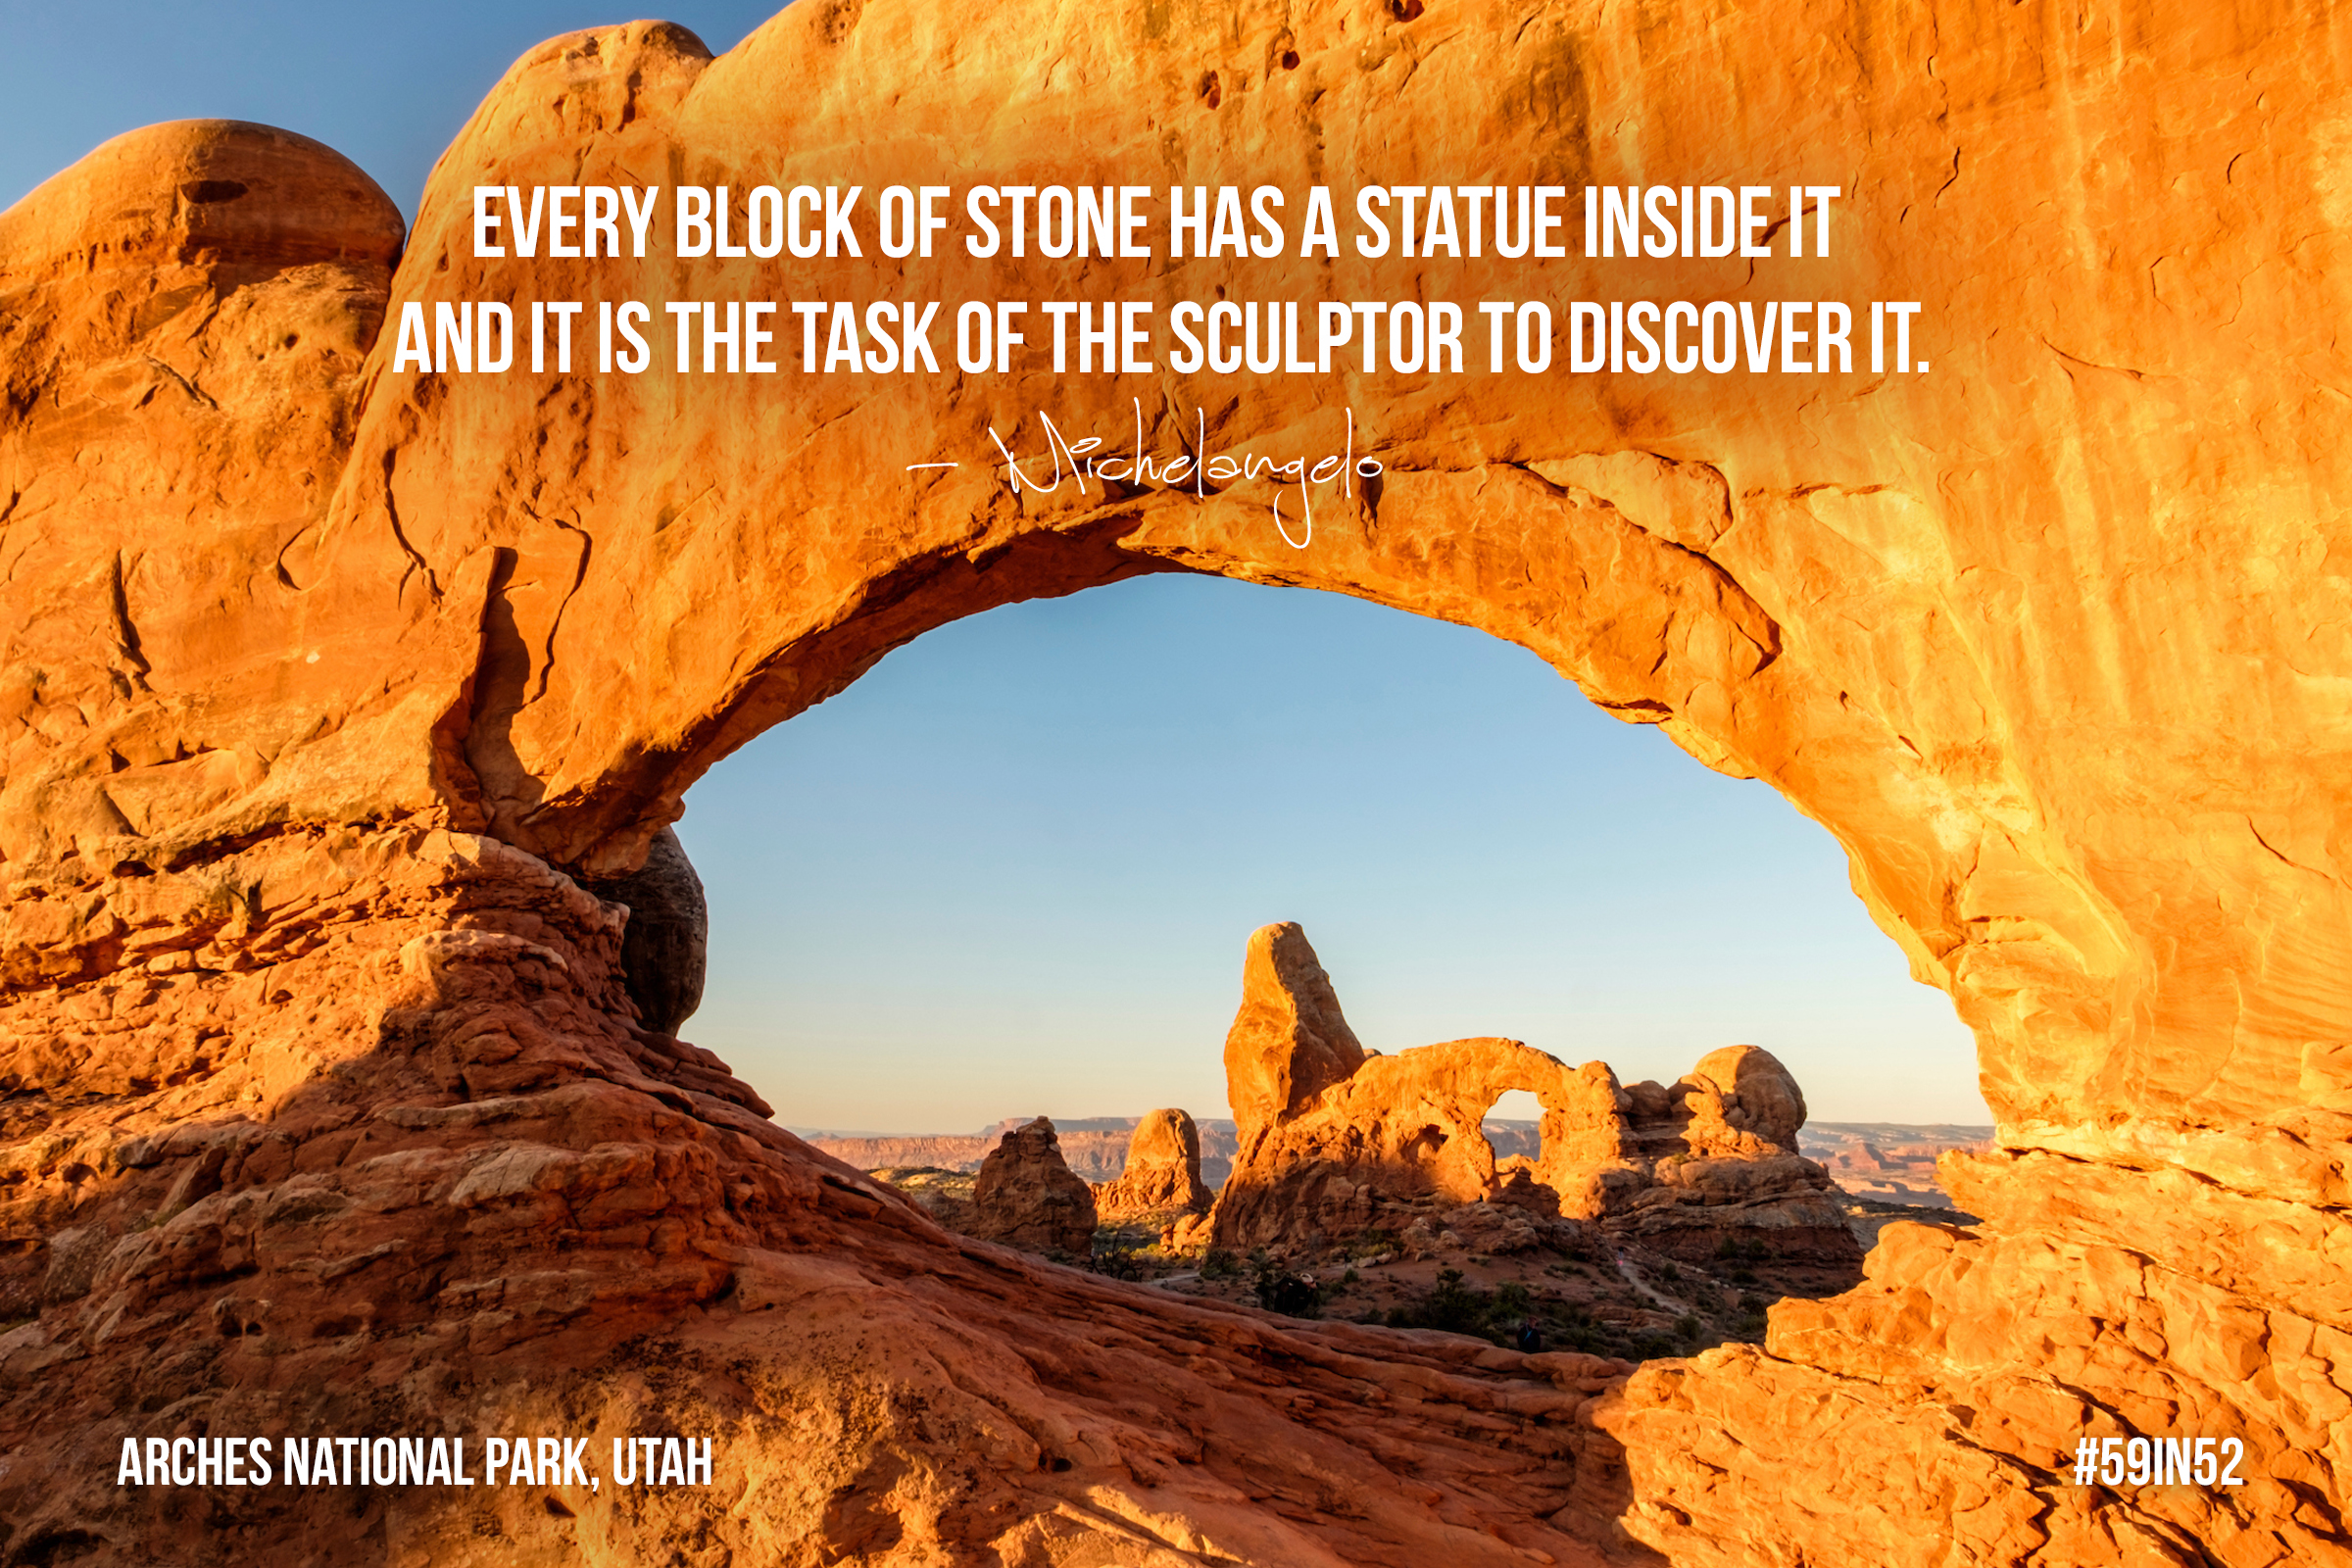 'Every block of stone has a statue inside it and it is the task of the sculptor to discover it.' - Michelangelo